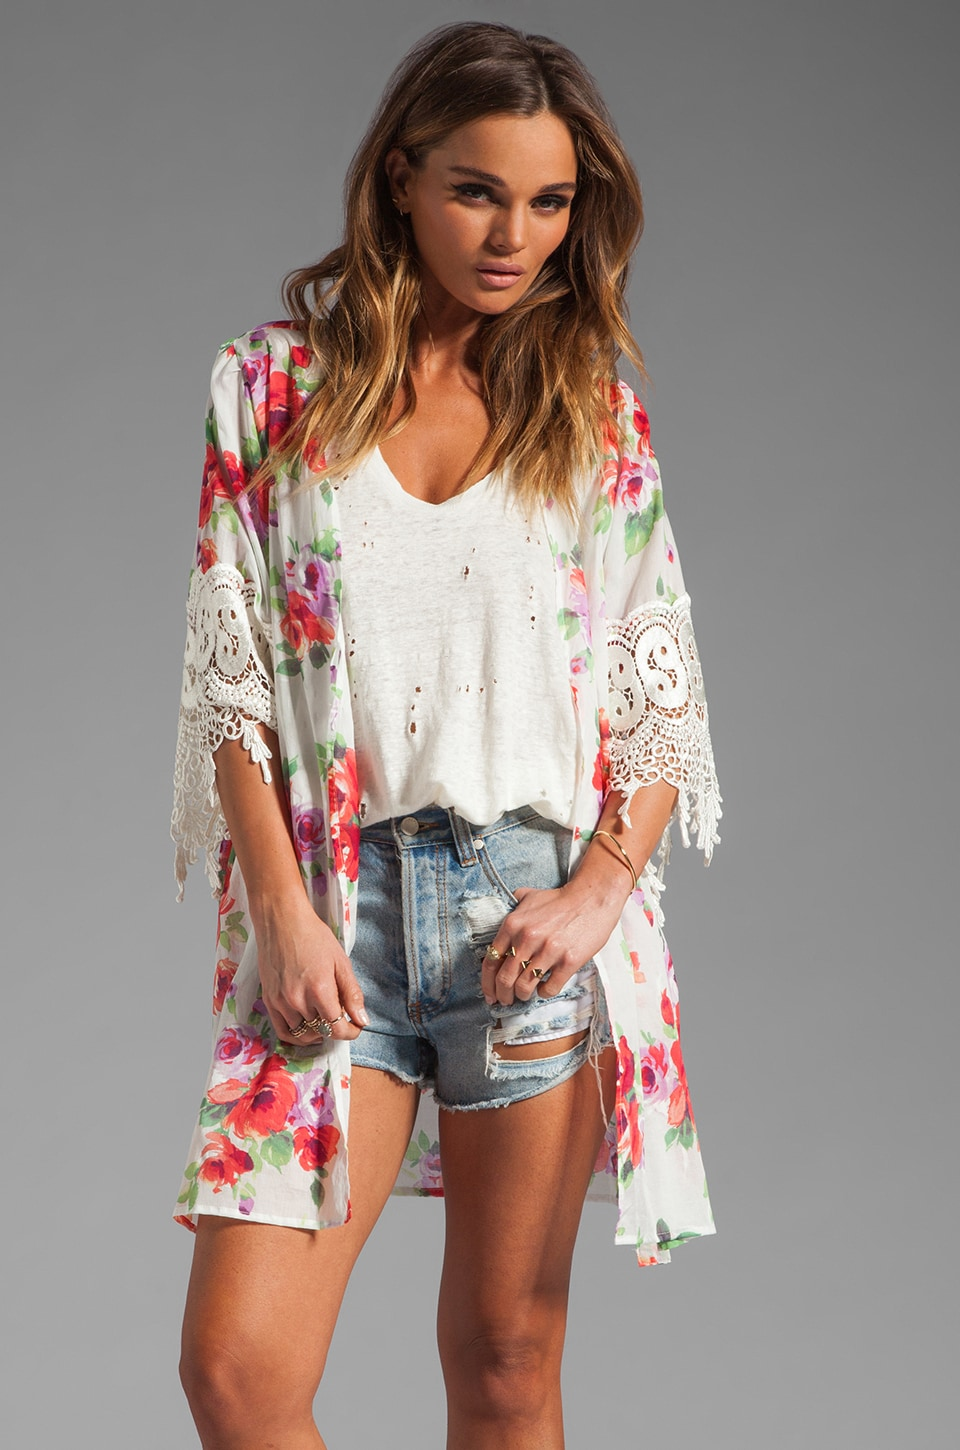 STONE_COLD_FOX REVOLVE Exclusive Lace Trim Robe in Country Floral